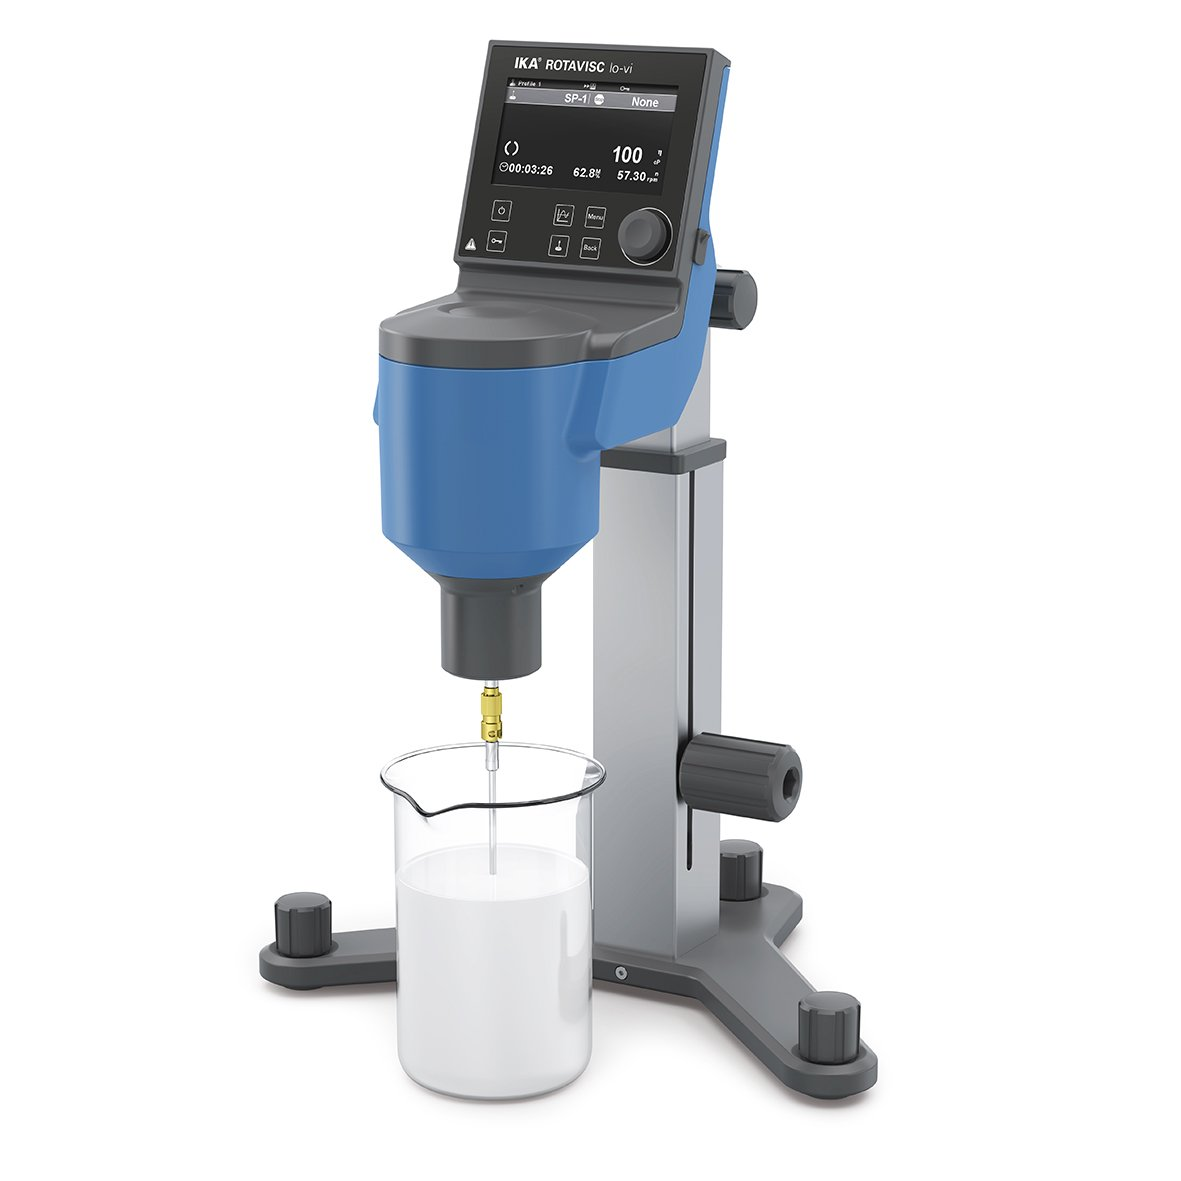 The viscometer of the new IKA ROTAVISC series